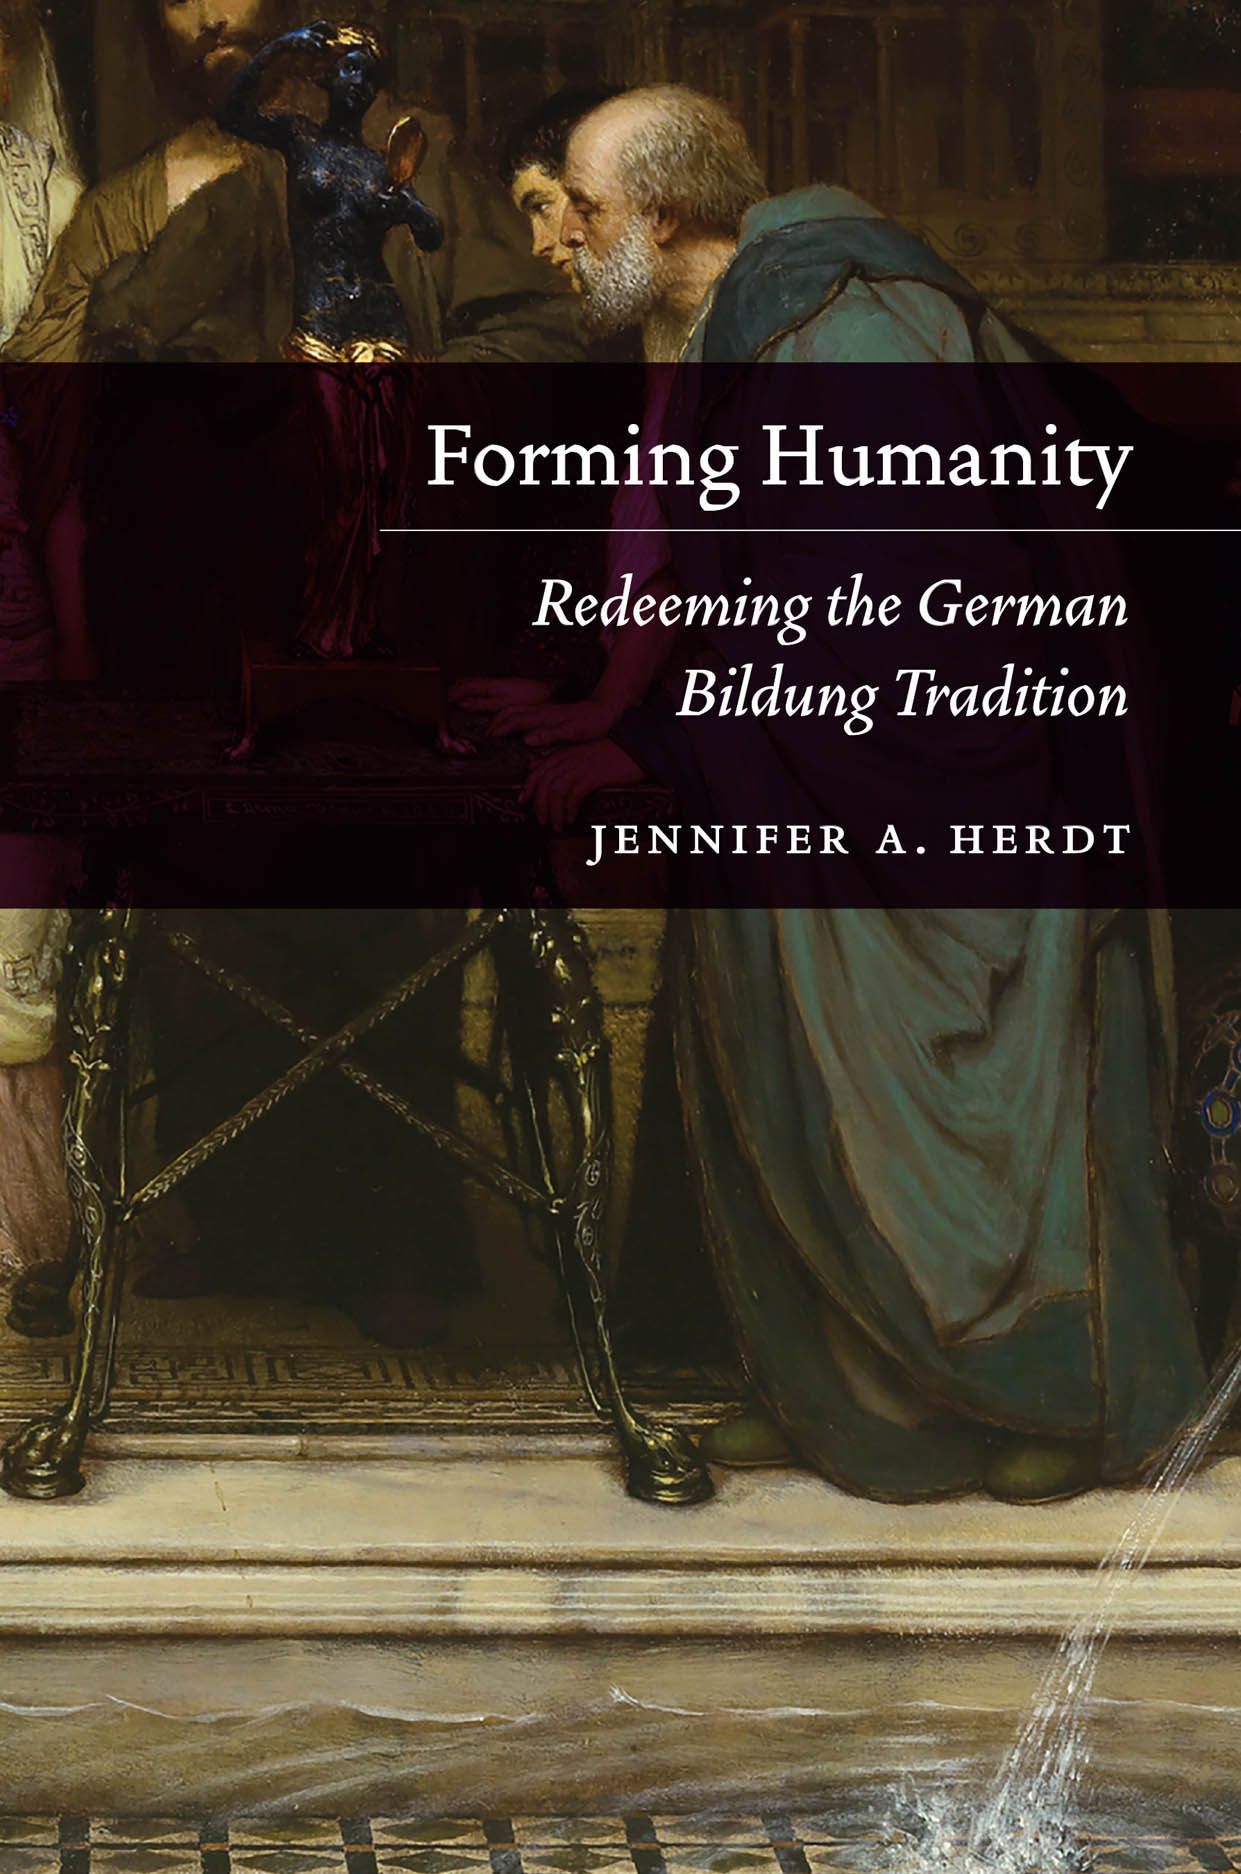 Forming Humanity: Redeeming the German Bildung Tradition